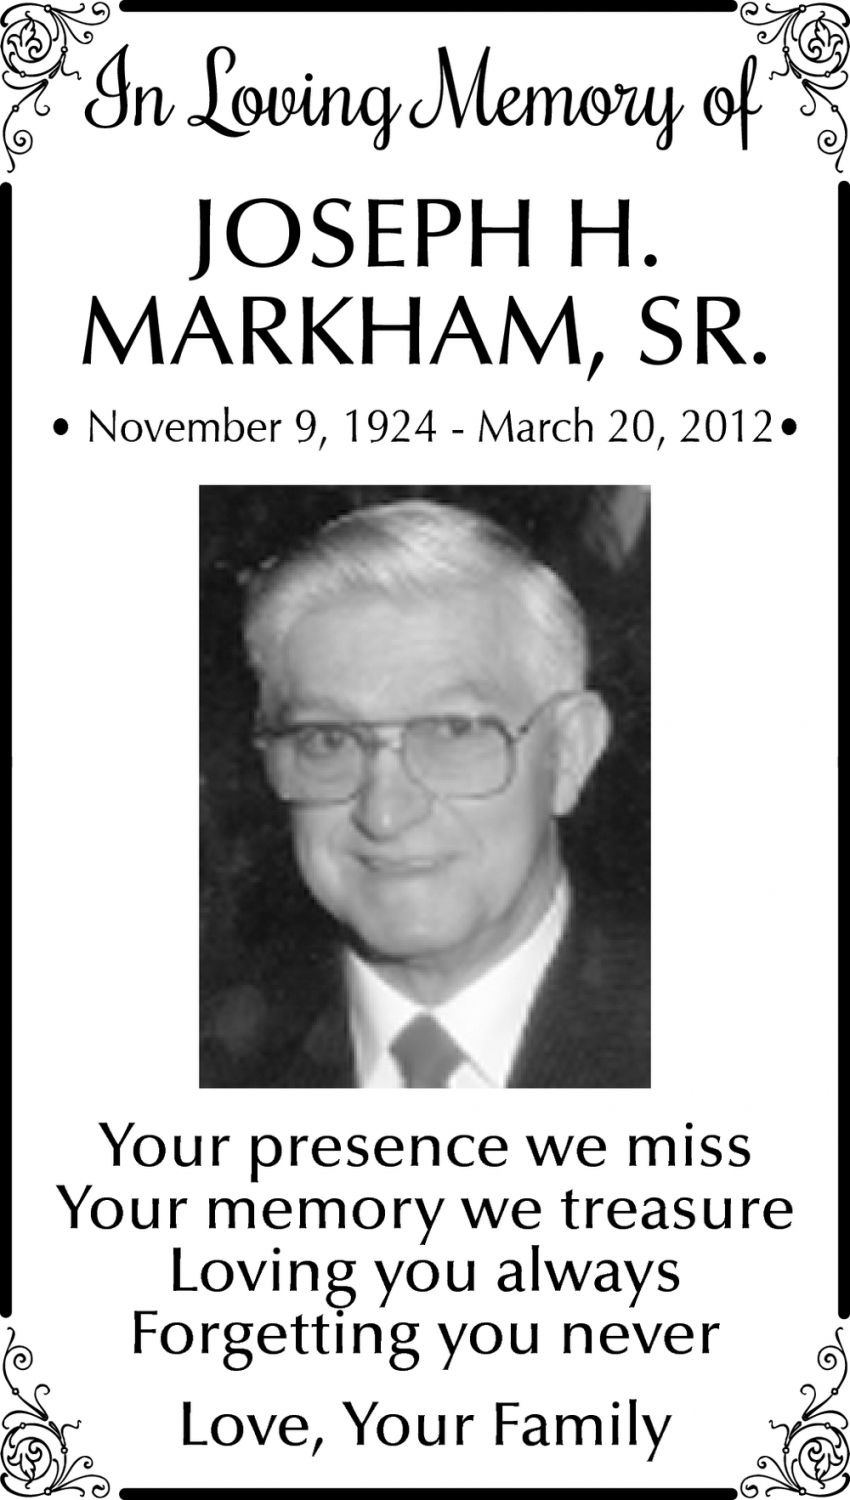 In Loving Memory Of Joseph H. Markham, Sr